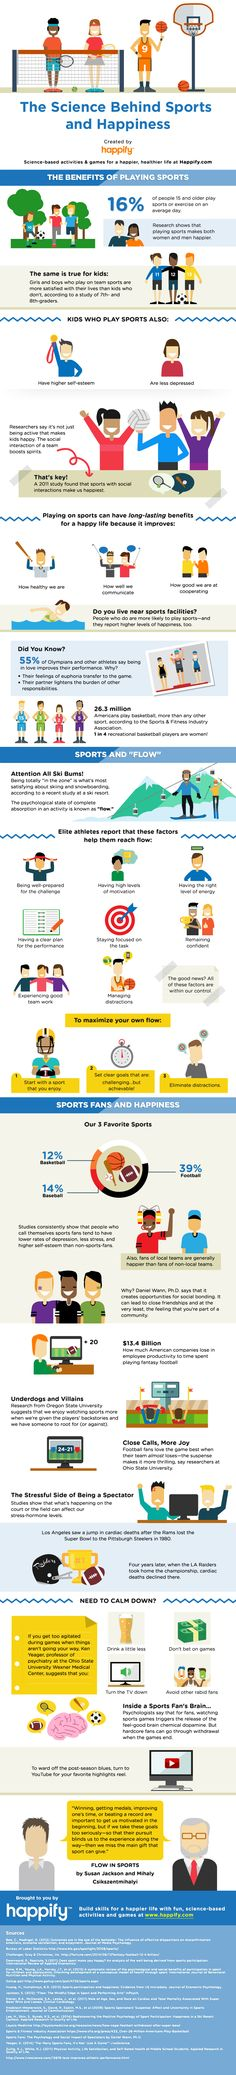 Feeling inspired to exercise more or join a team? Check out Happify's infographic, The Science Behind Sports and Happiness. This infographic is full of science-based facts about why being a sports fan (or a team-player) is so beneficial to your health and happiness!